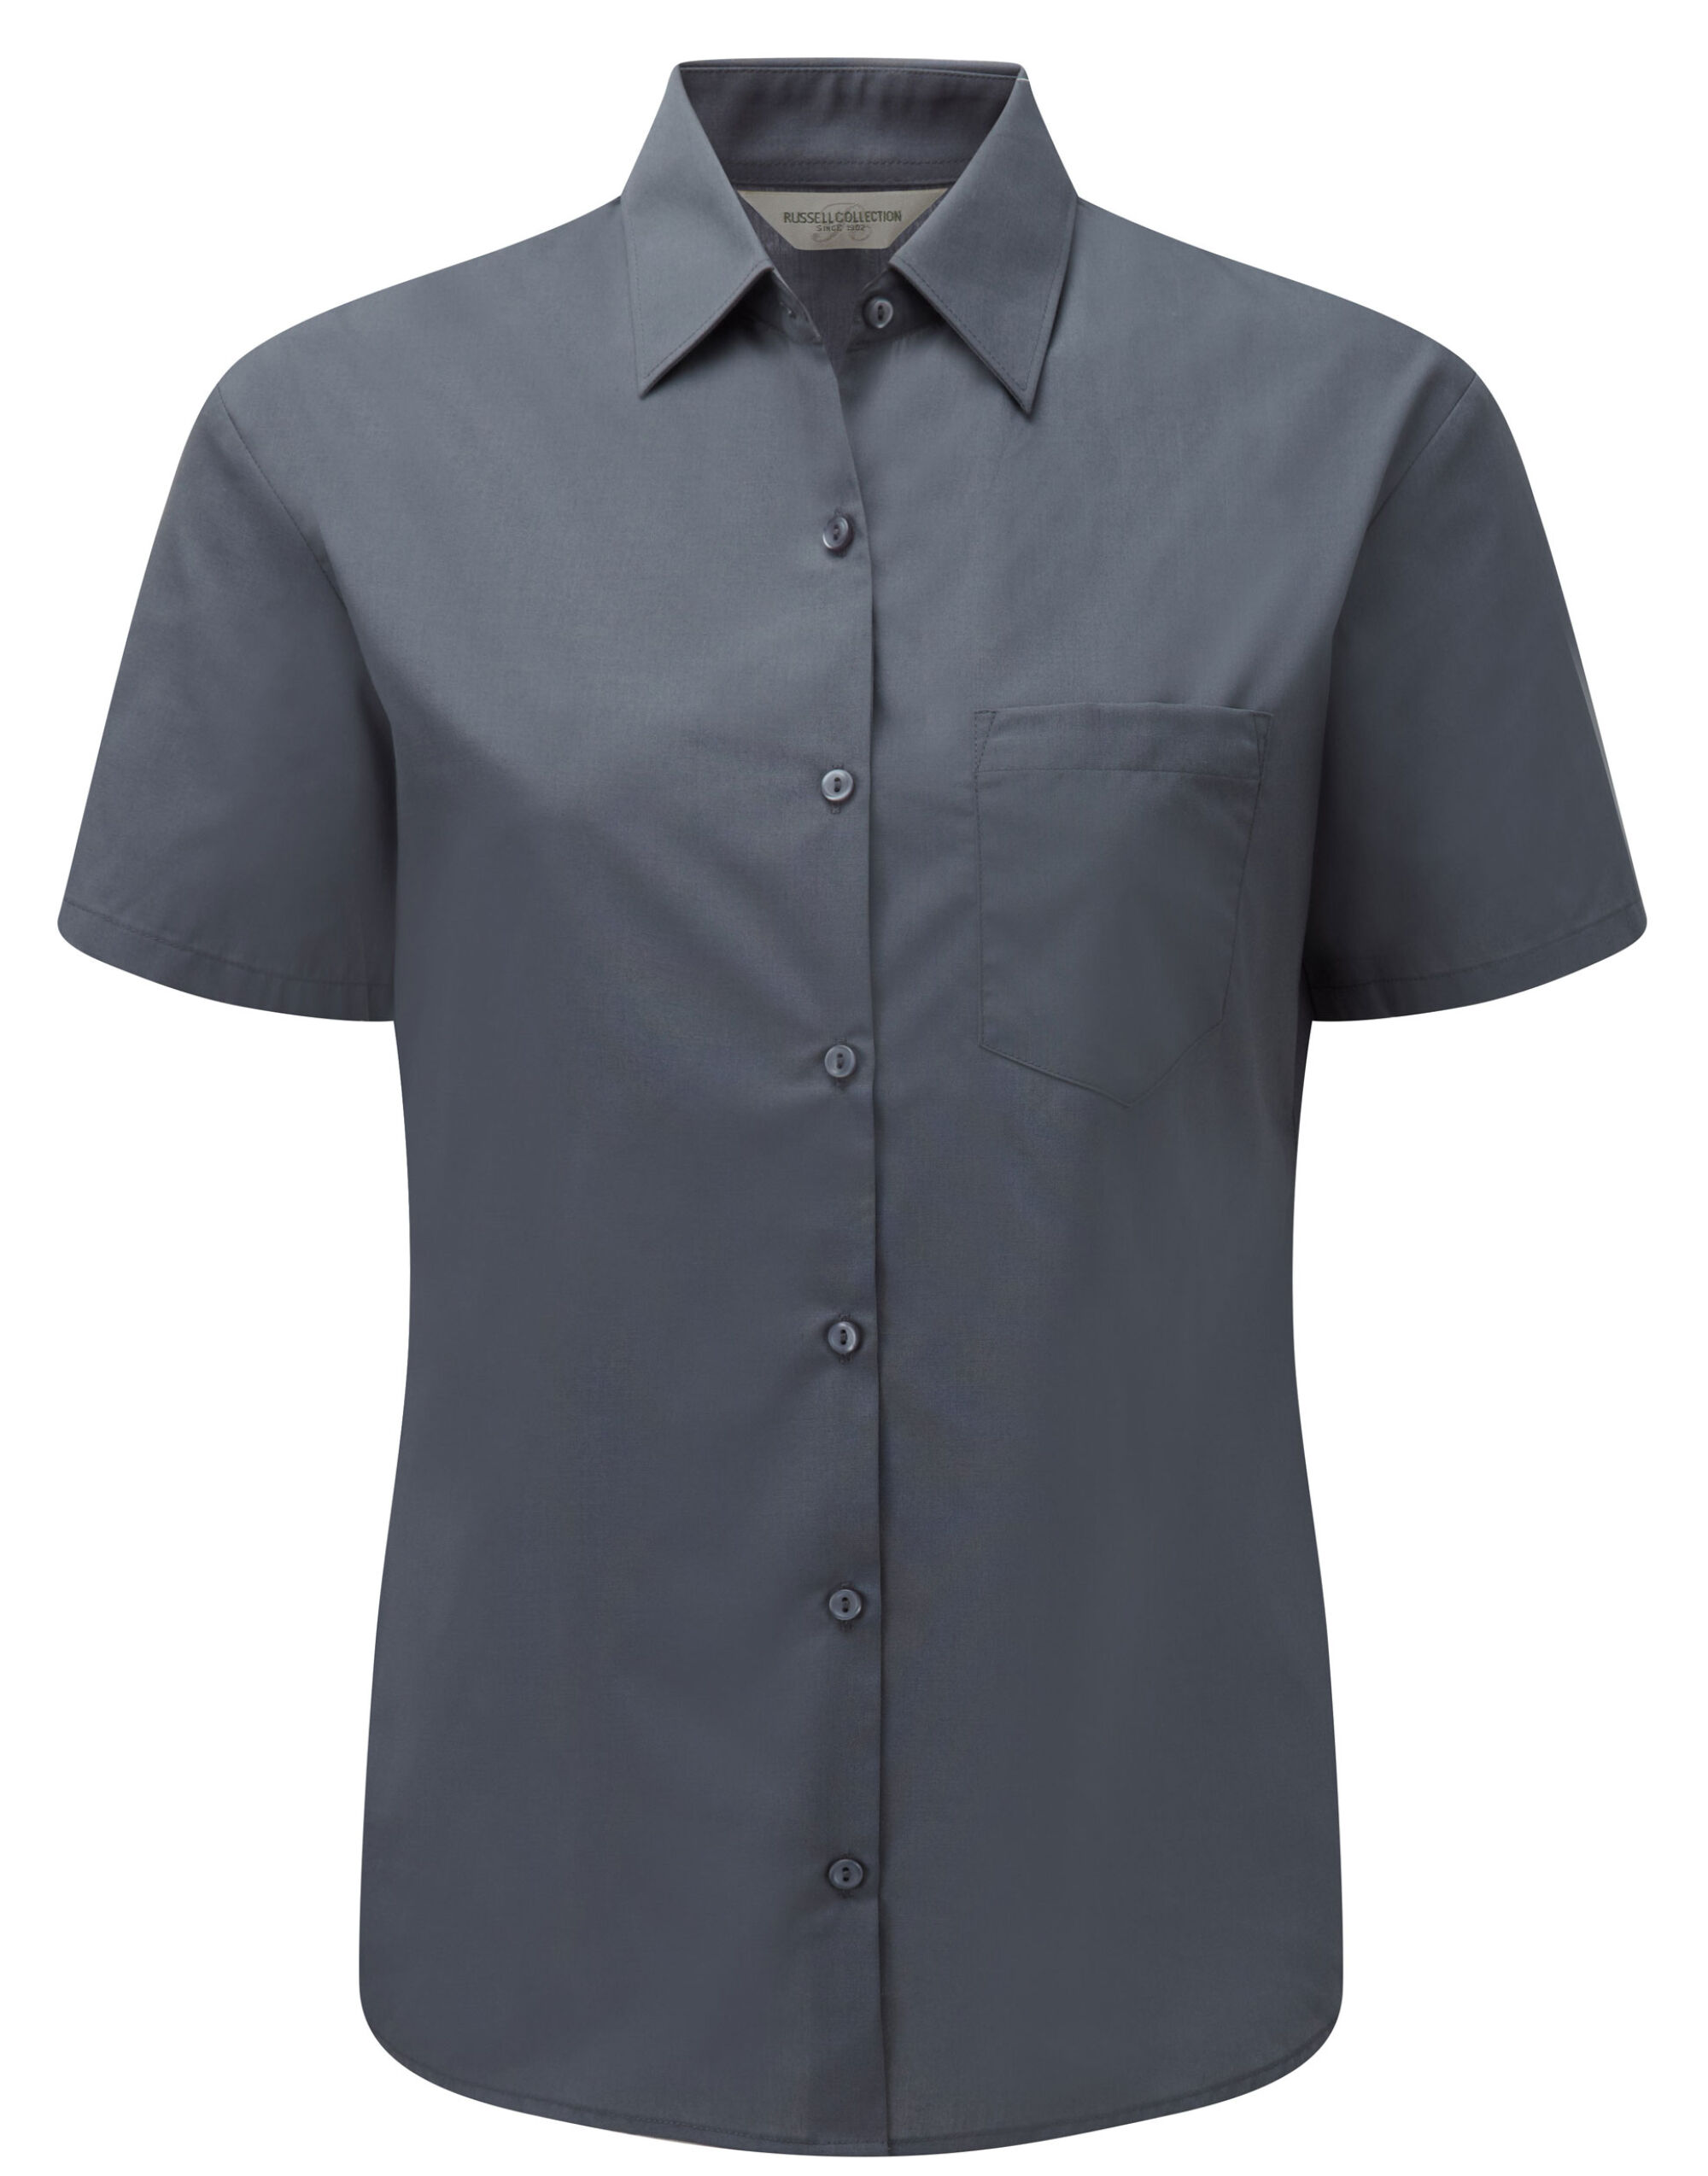 Russell Col Lady S/S PolyCot Poplin Sht